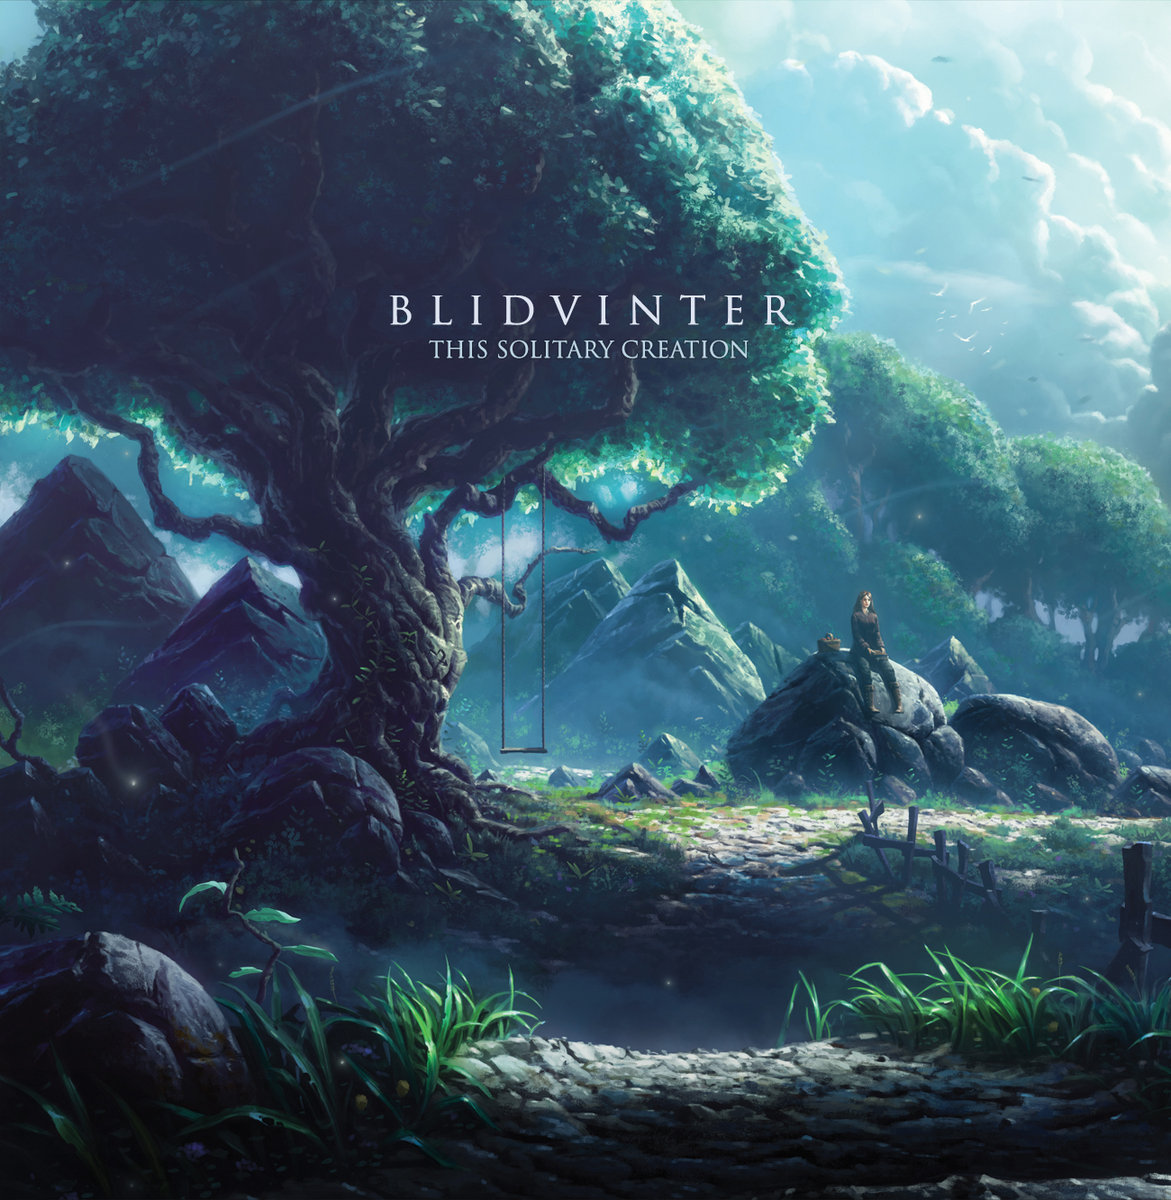 This Solitary Creation | Blidvinter